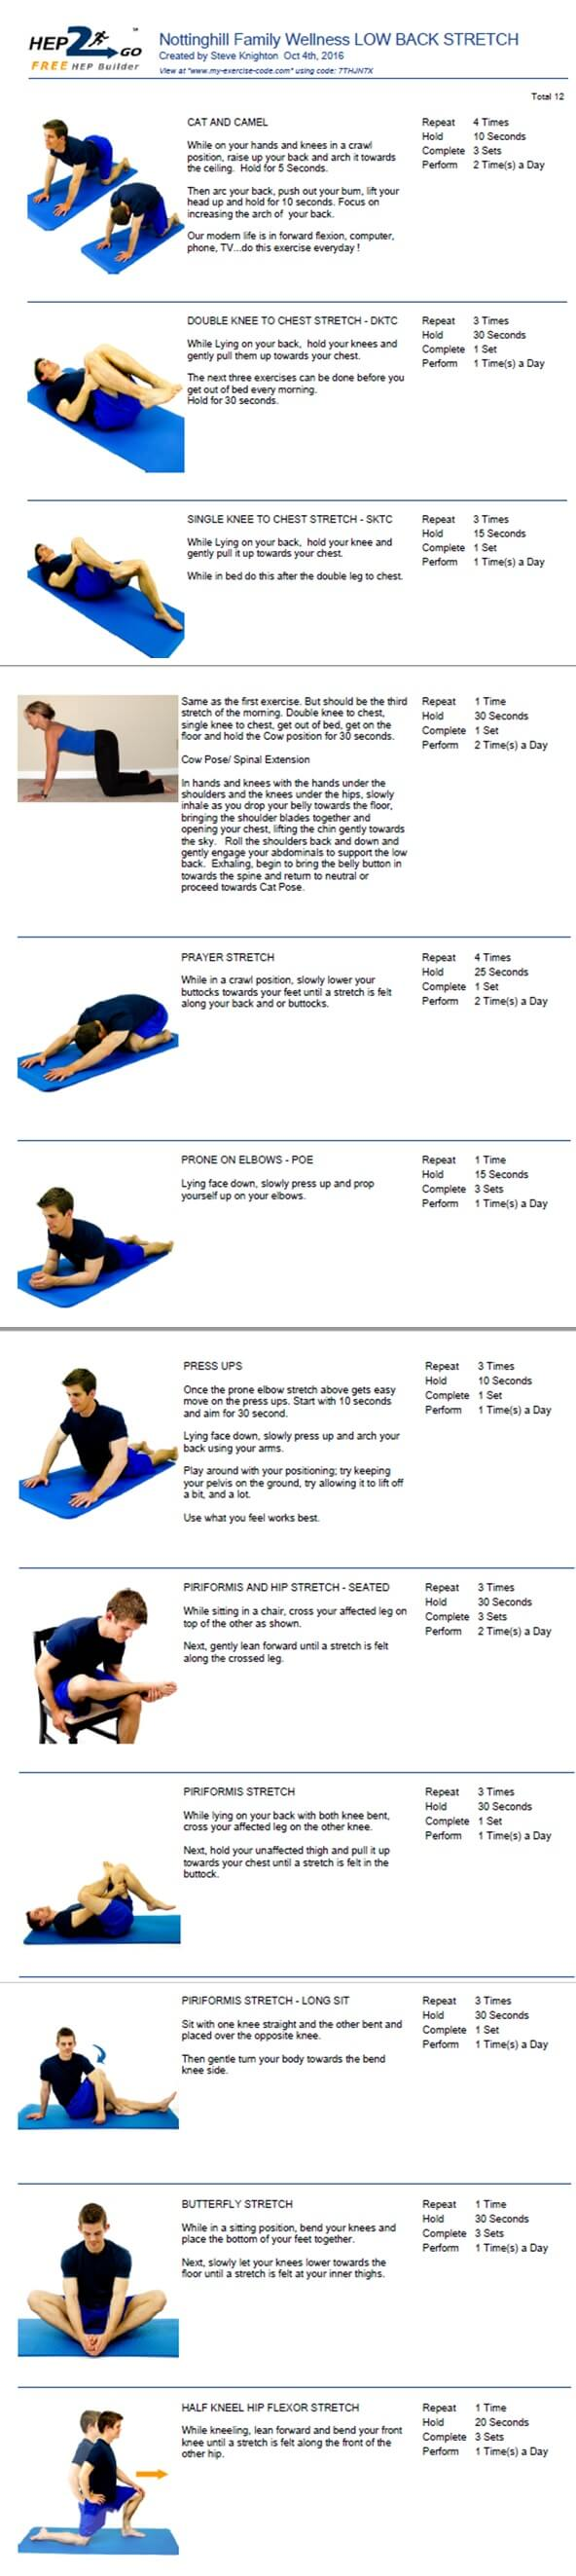 Low Back Stretches chiropractic clinic approved